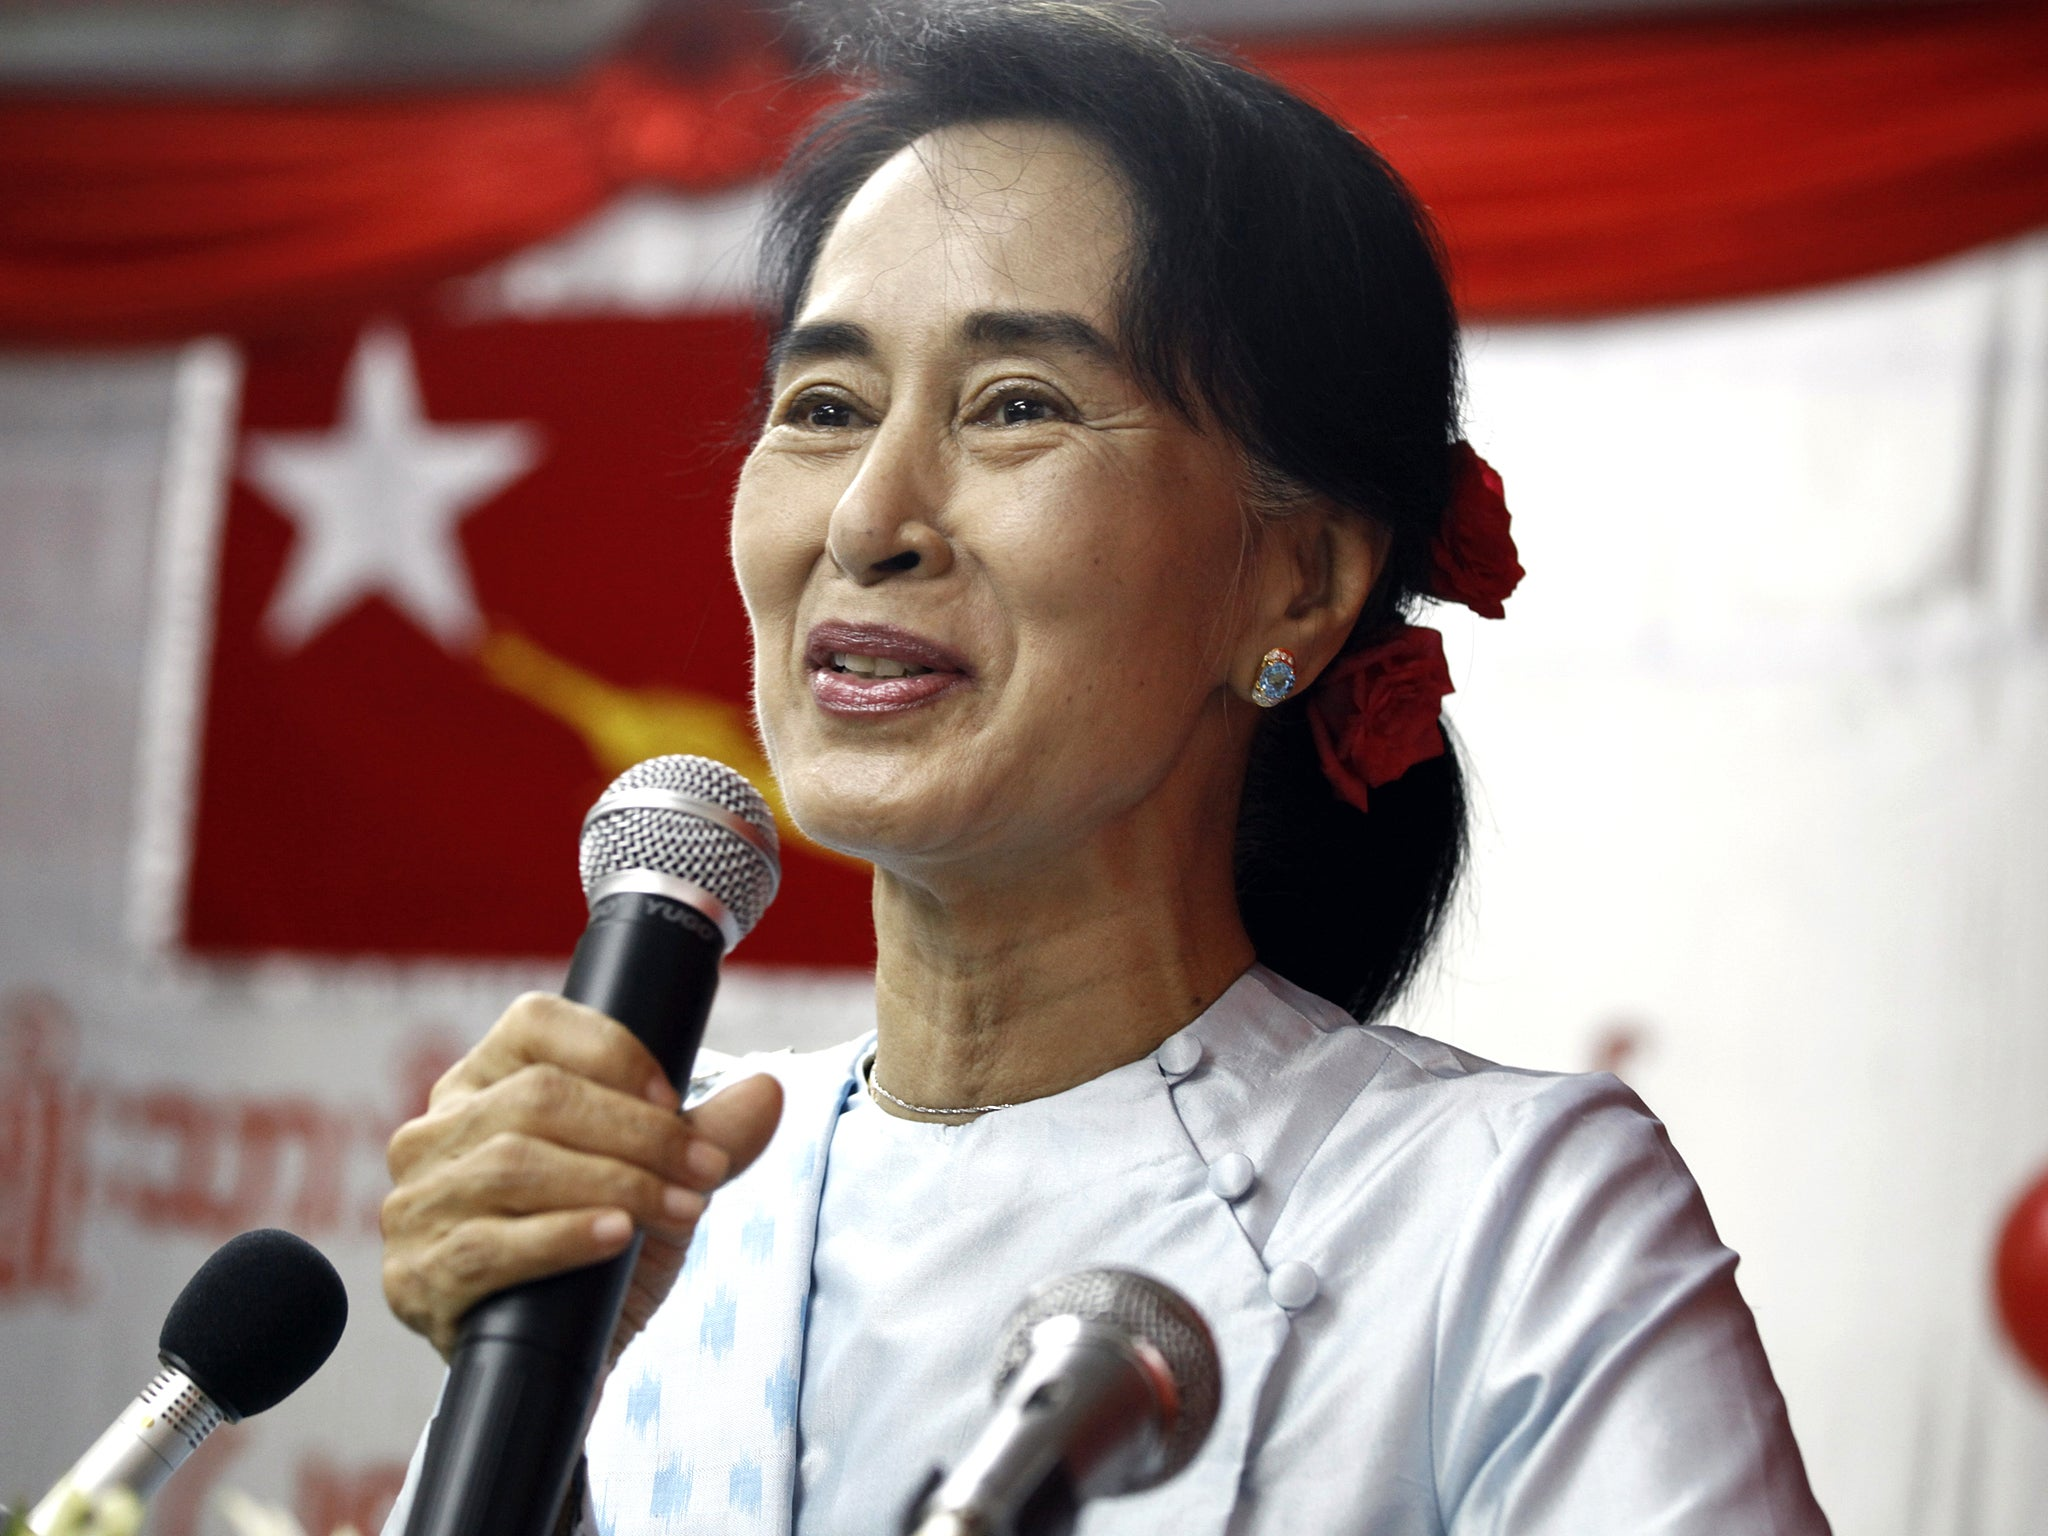 aung san suu kyi 39 s silence on the genocide of rohingya muslims is tantamount to complicity the. Black Bedroom Furniture Sets. Home Design Ideas